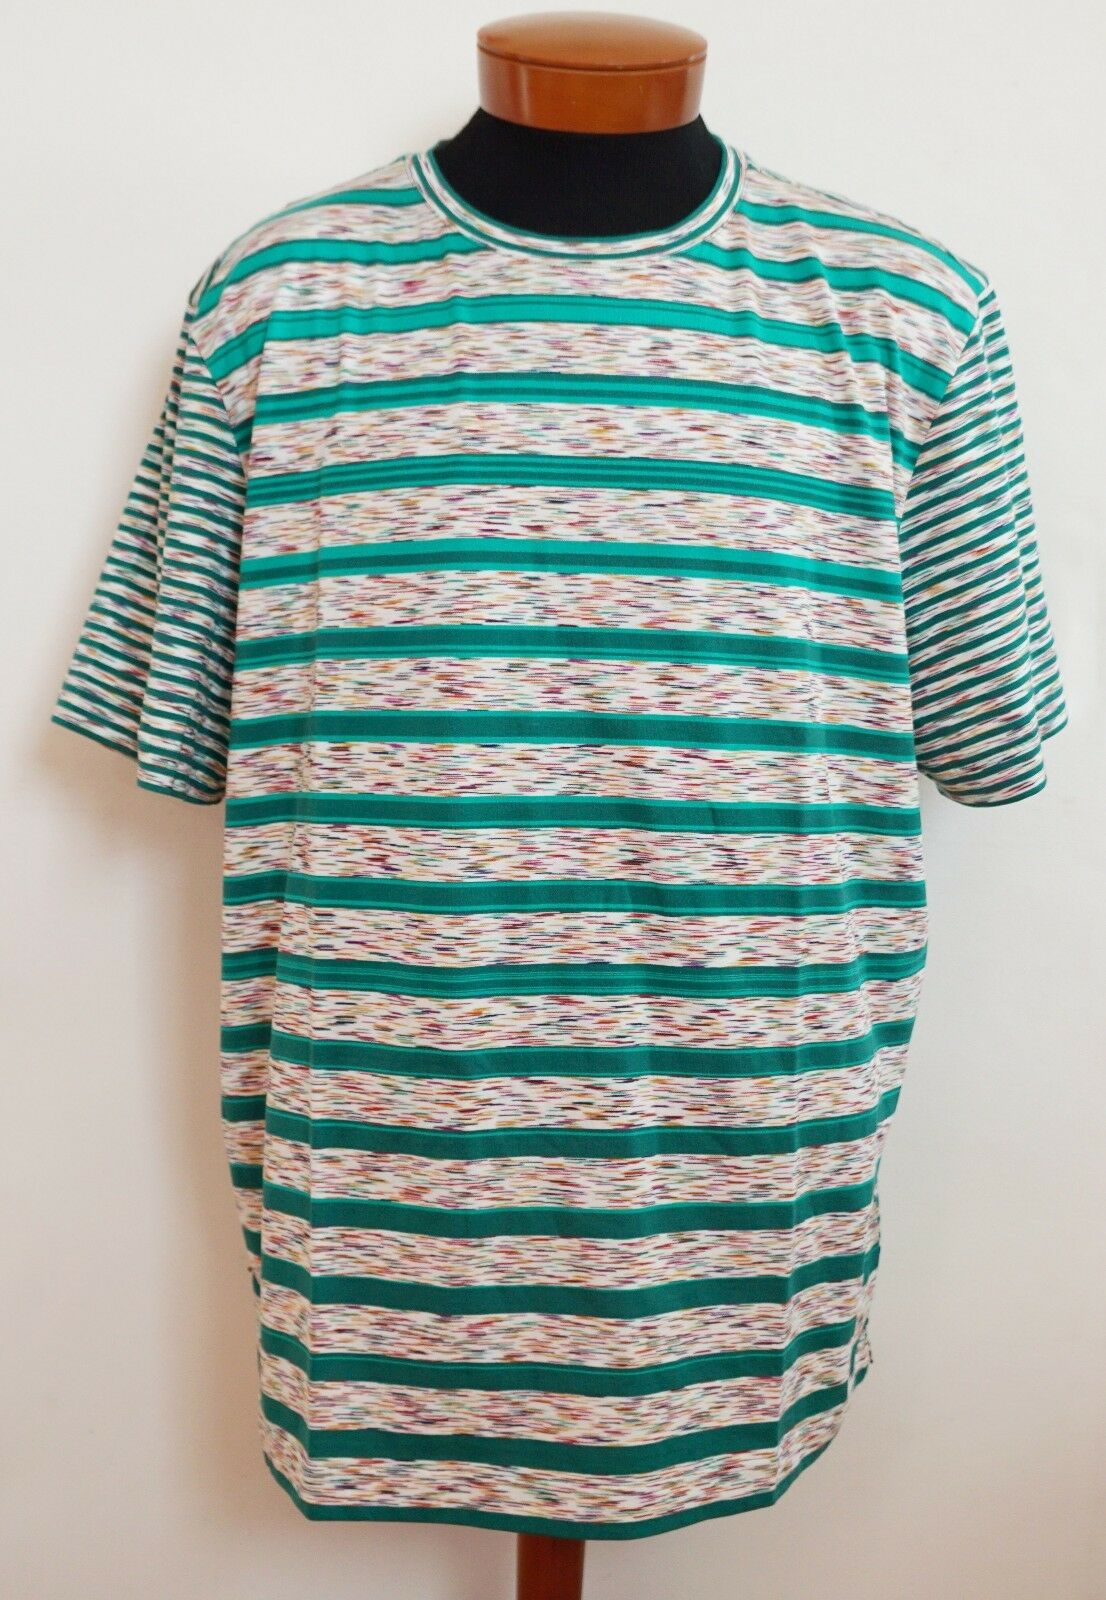 NWT Authentic MISSONI Multi-colord 100% Cotton Short-Sleeve T-Shirt Top XXL 2XL